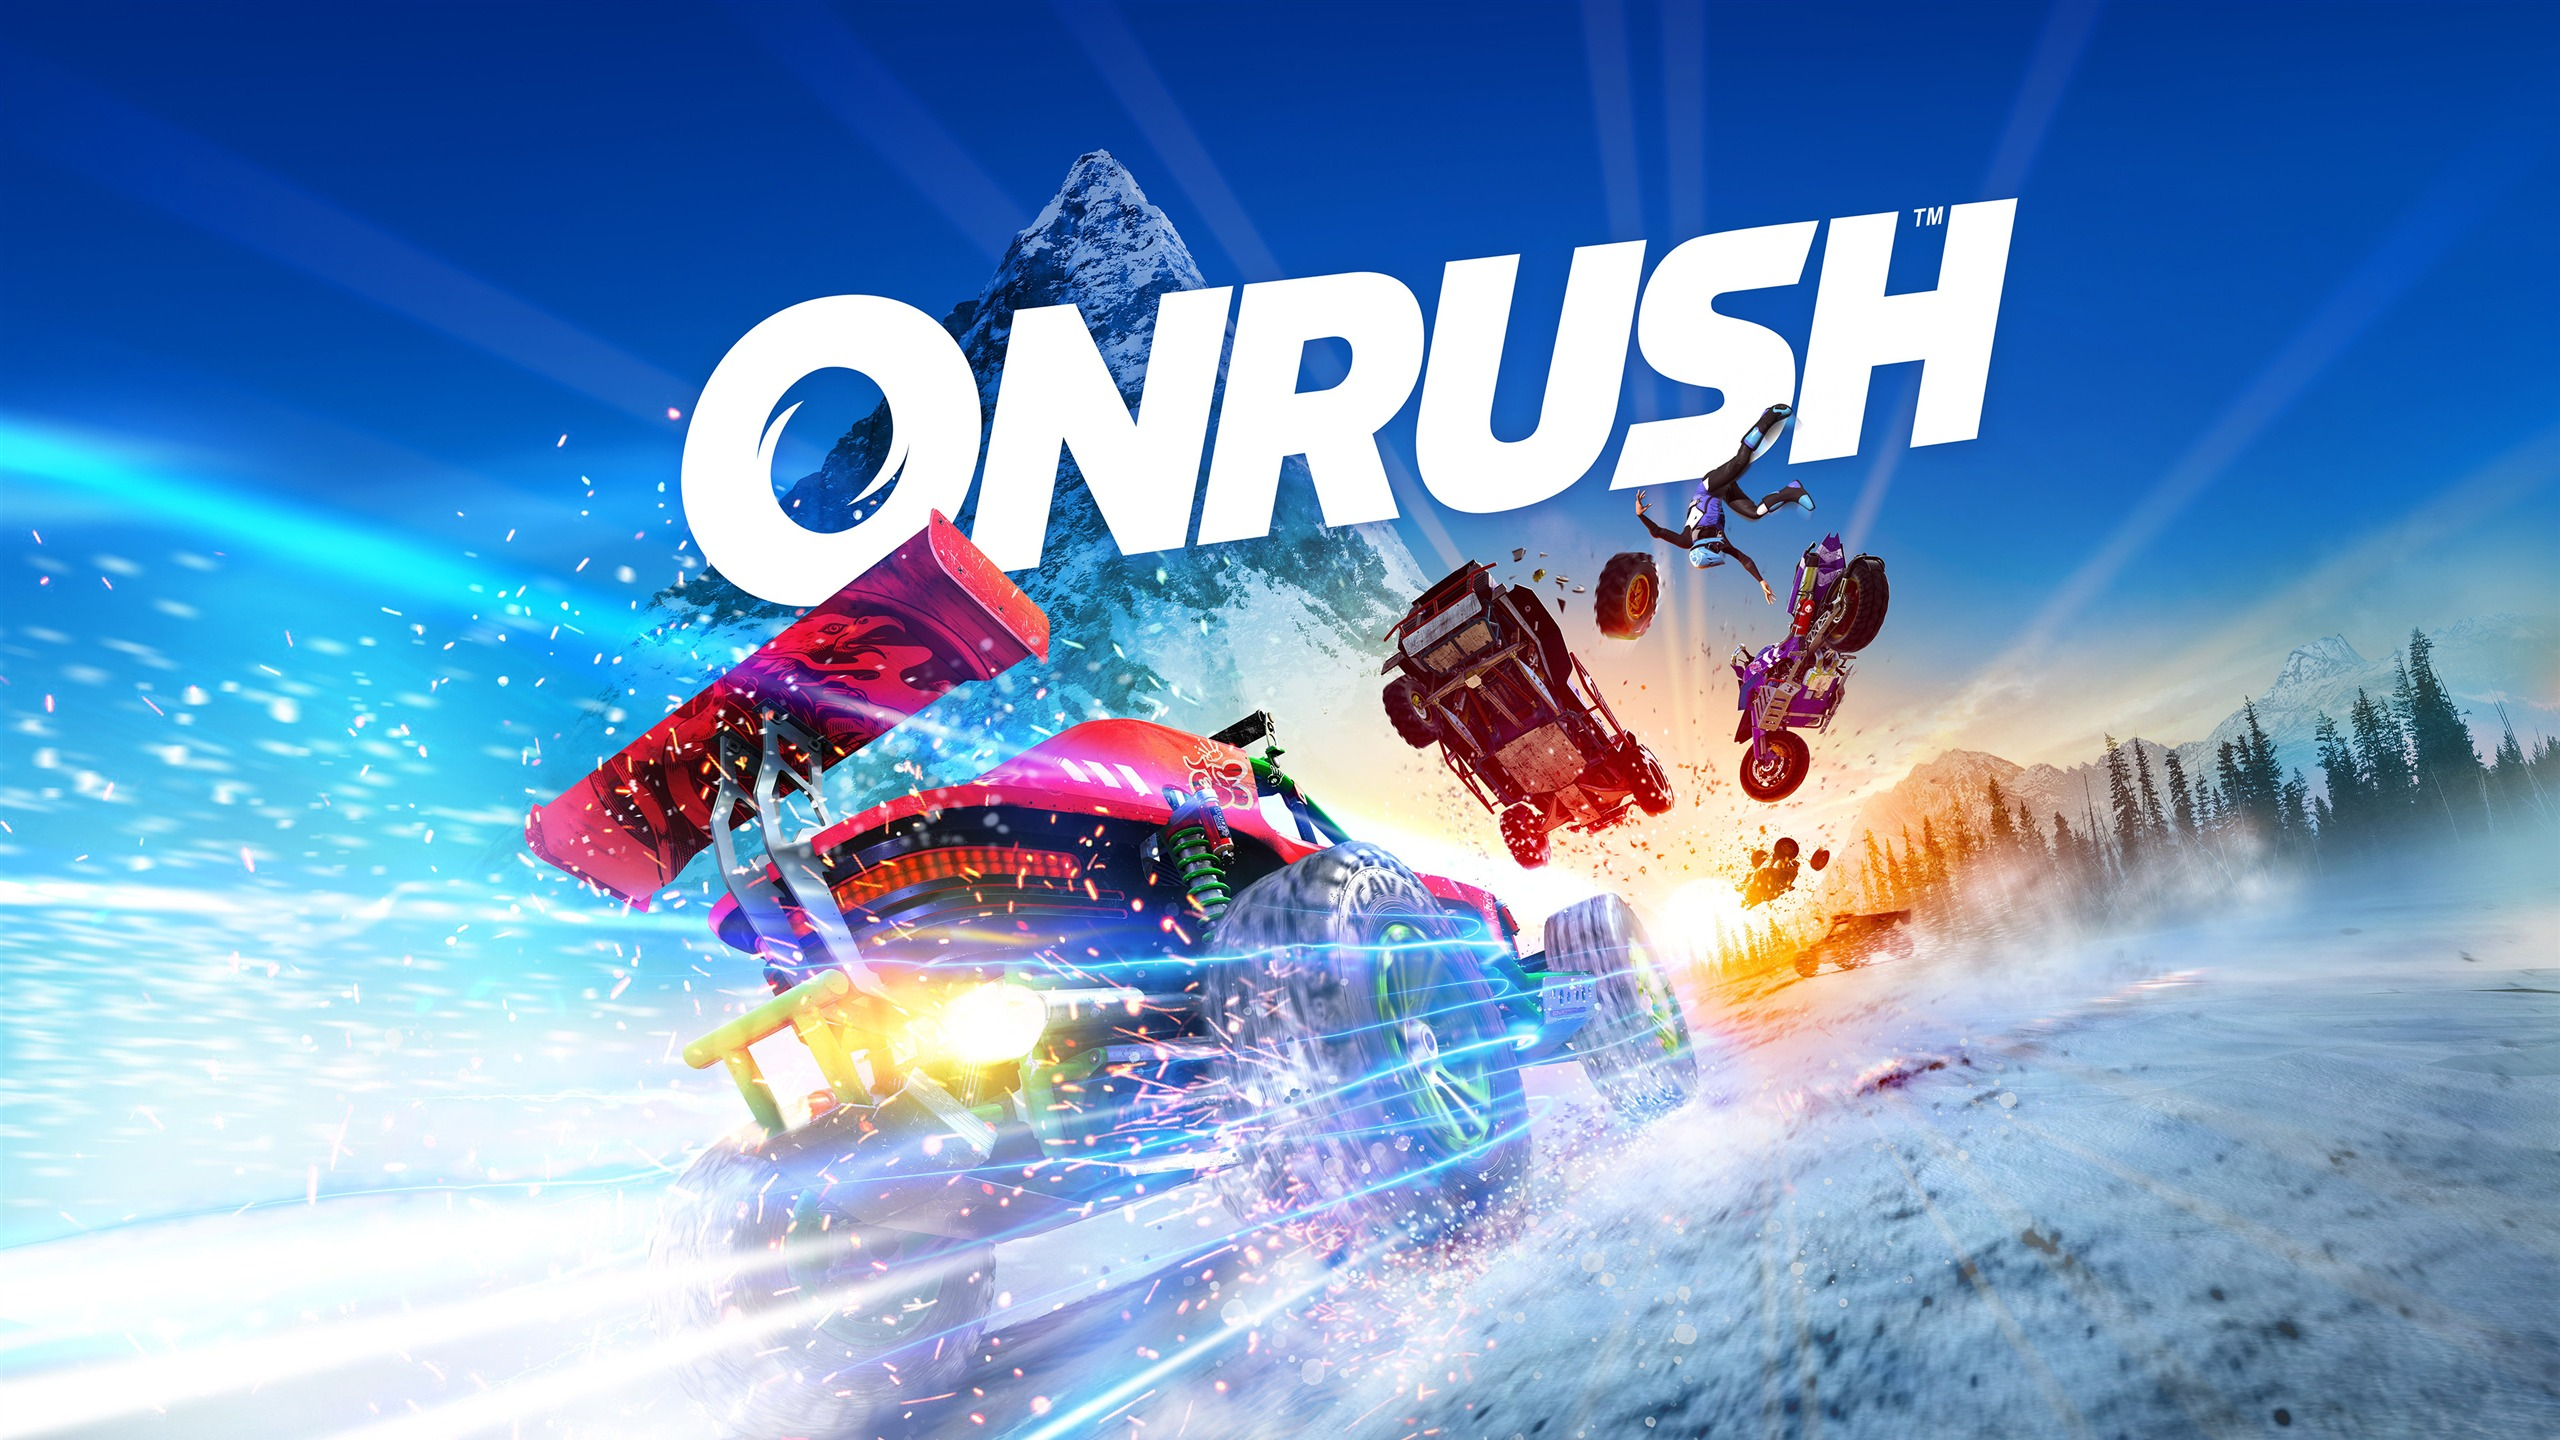 Onrush 2018 Video Game 4K HD Poster - 2560x1440 wallpaper download